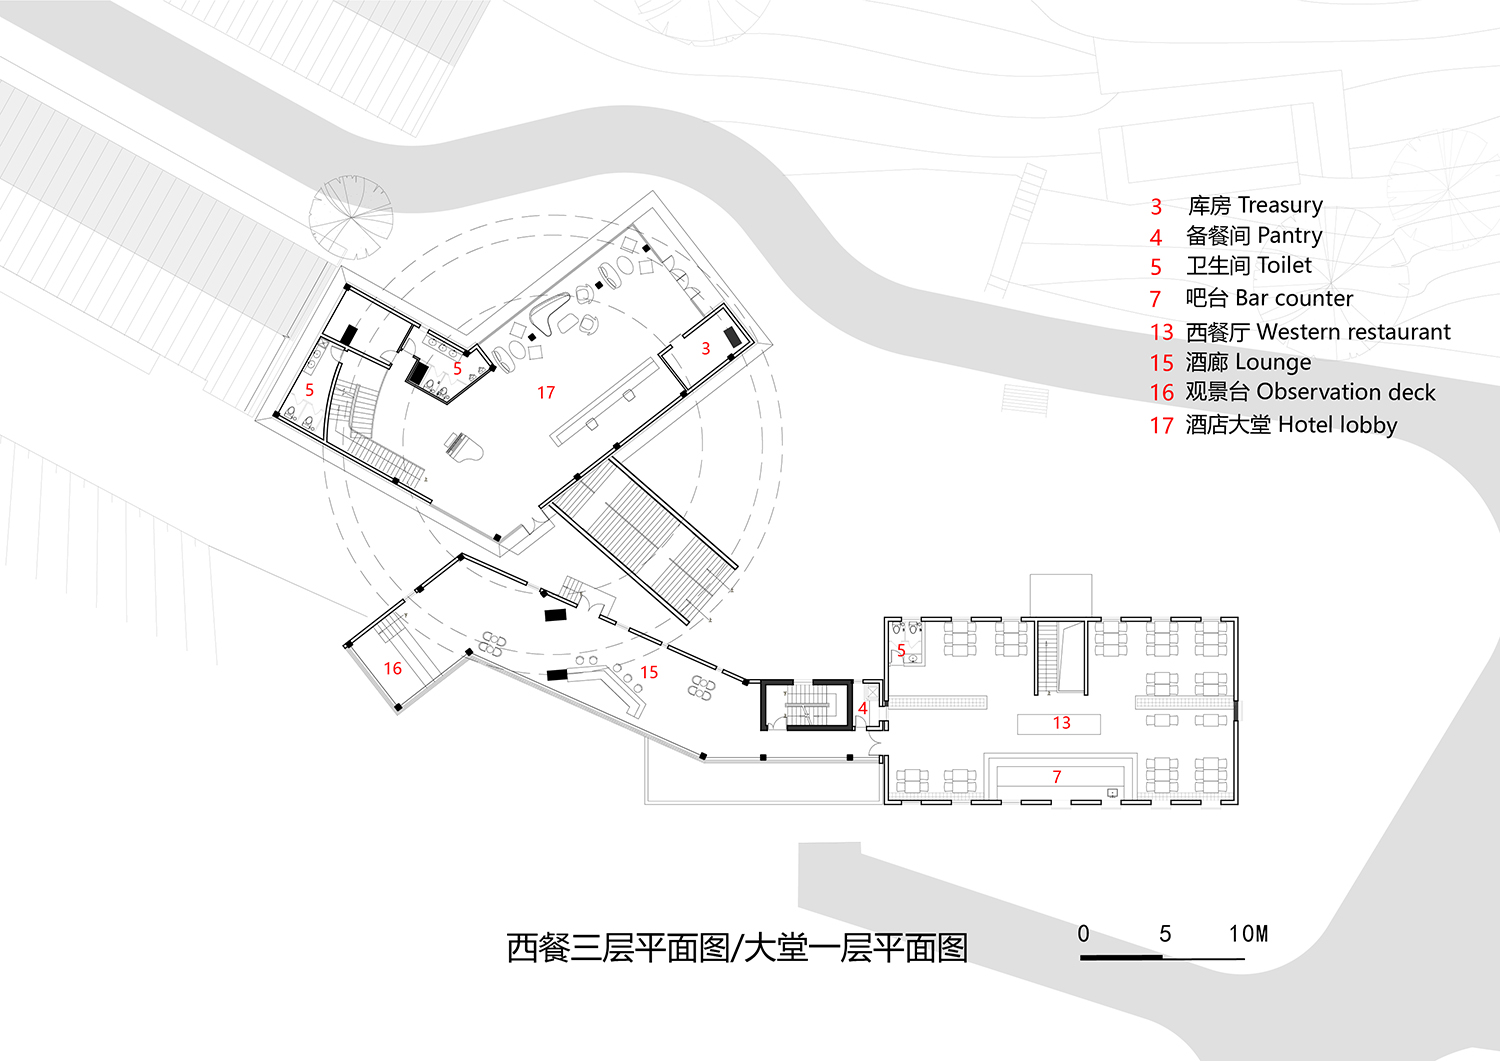 02-Plan of the 1st floor of lobby and the third floor of western restaurant 3andwich Design}